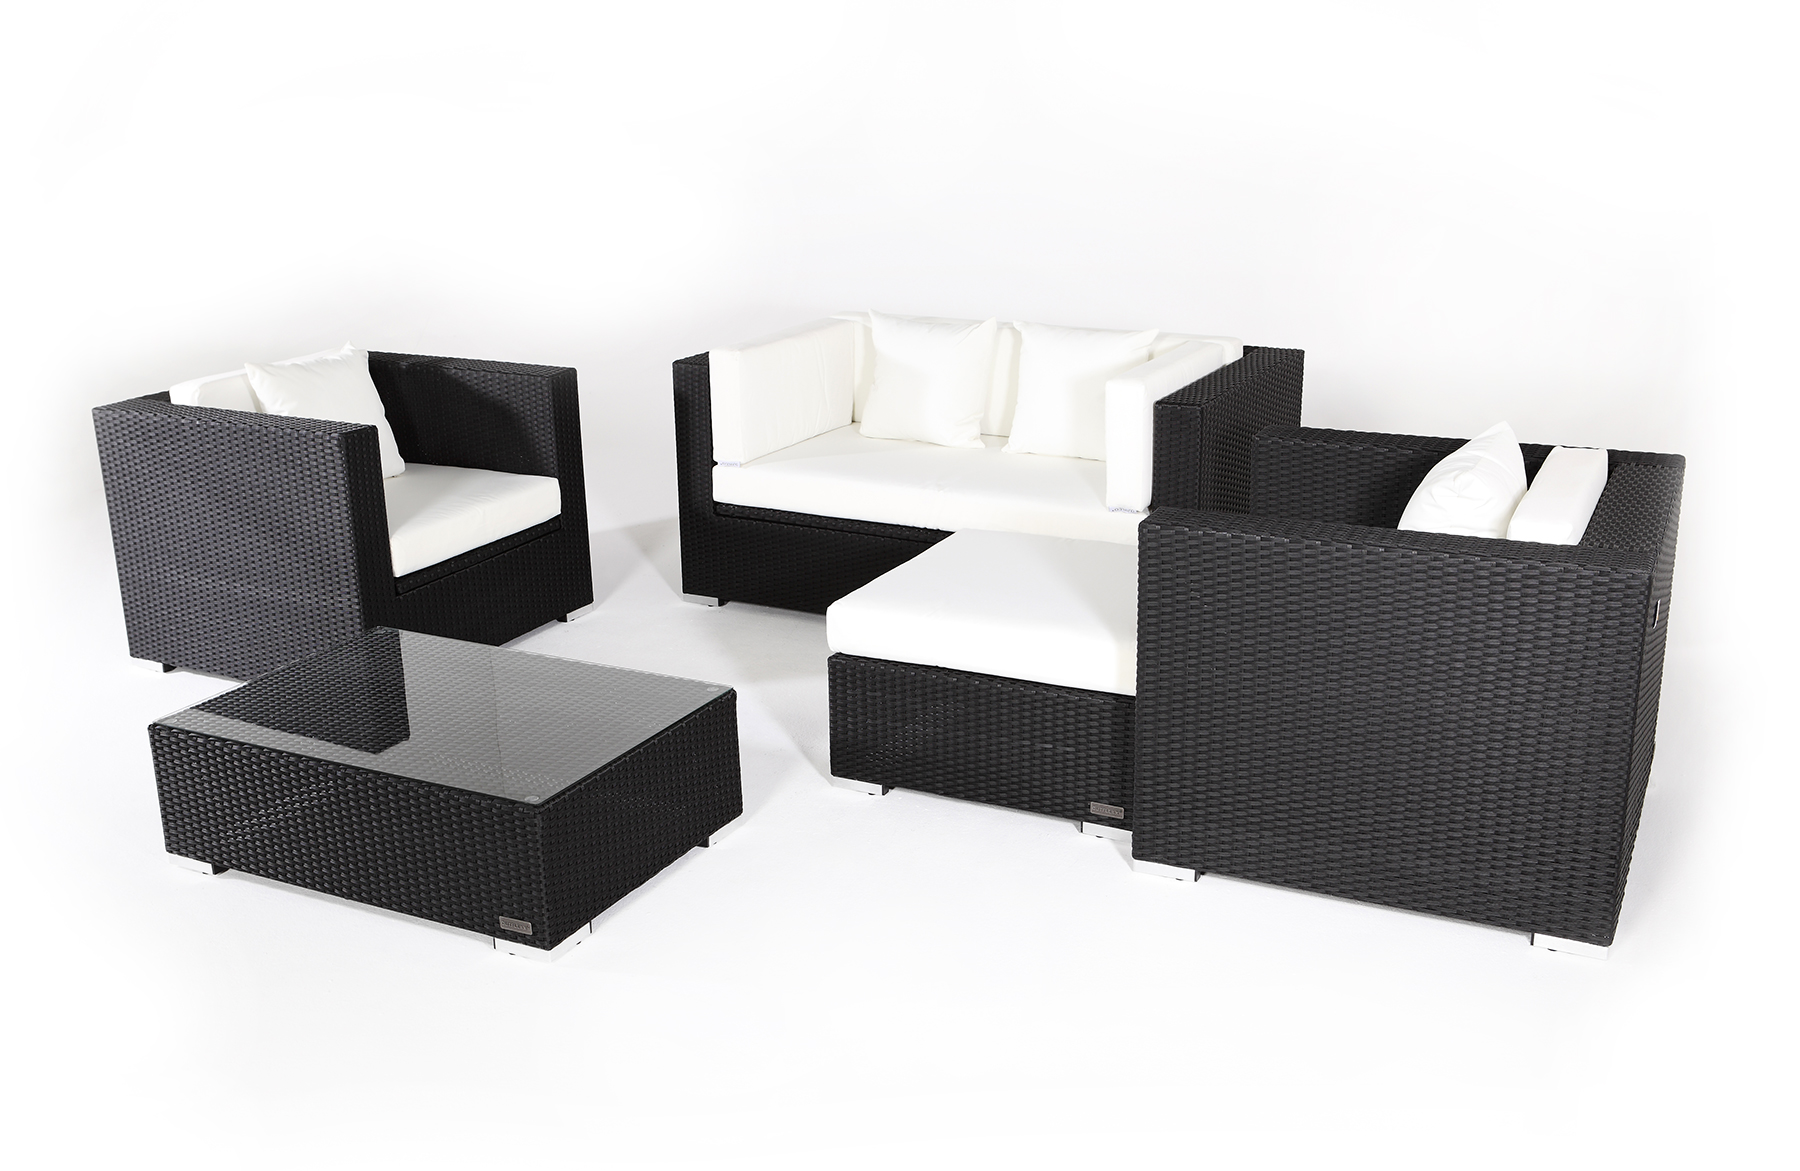 outflexx sitzgruppe aus polyrattan mit kissenboxfunktion inkl kaffeetisch f r 5 pers braun. Black Bedroom Furniture Sets. Home Design Ideas